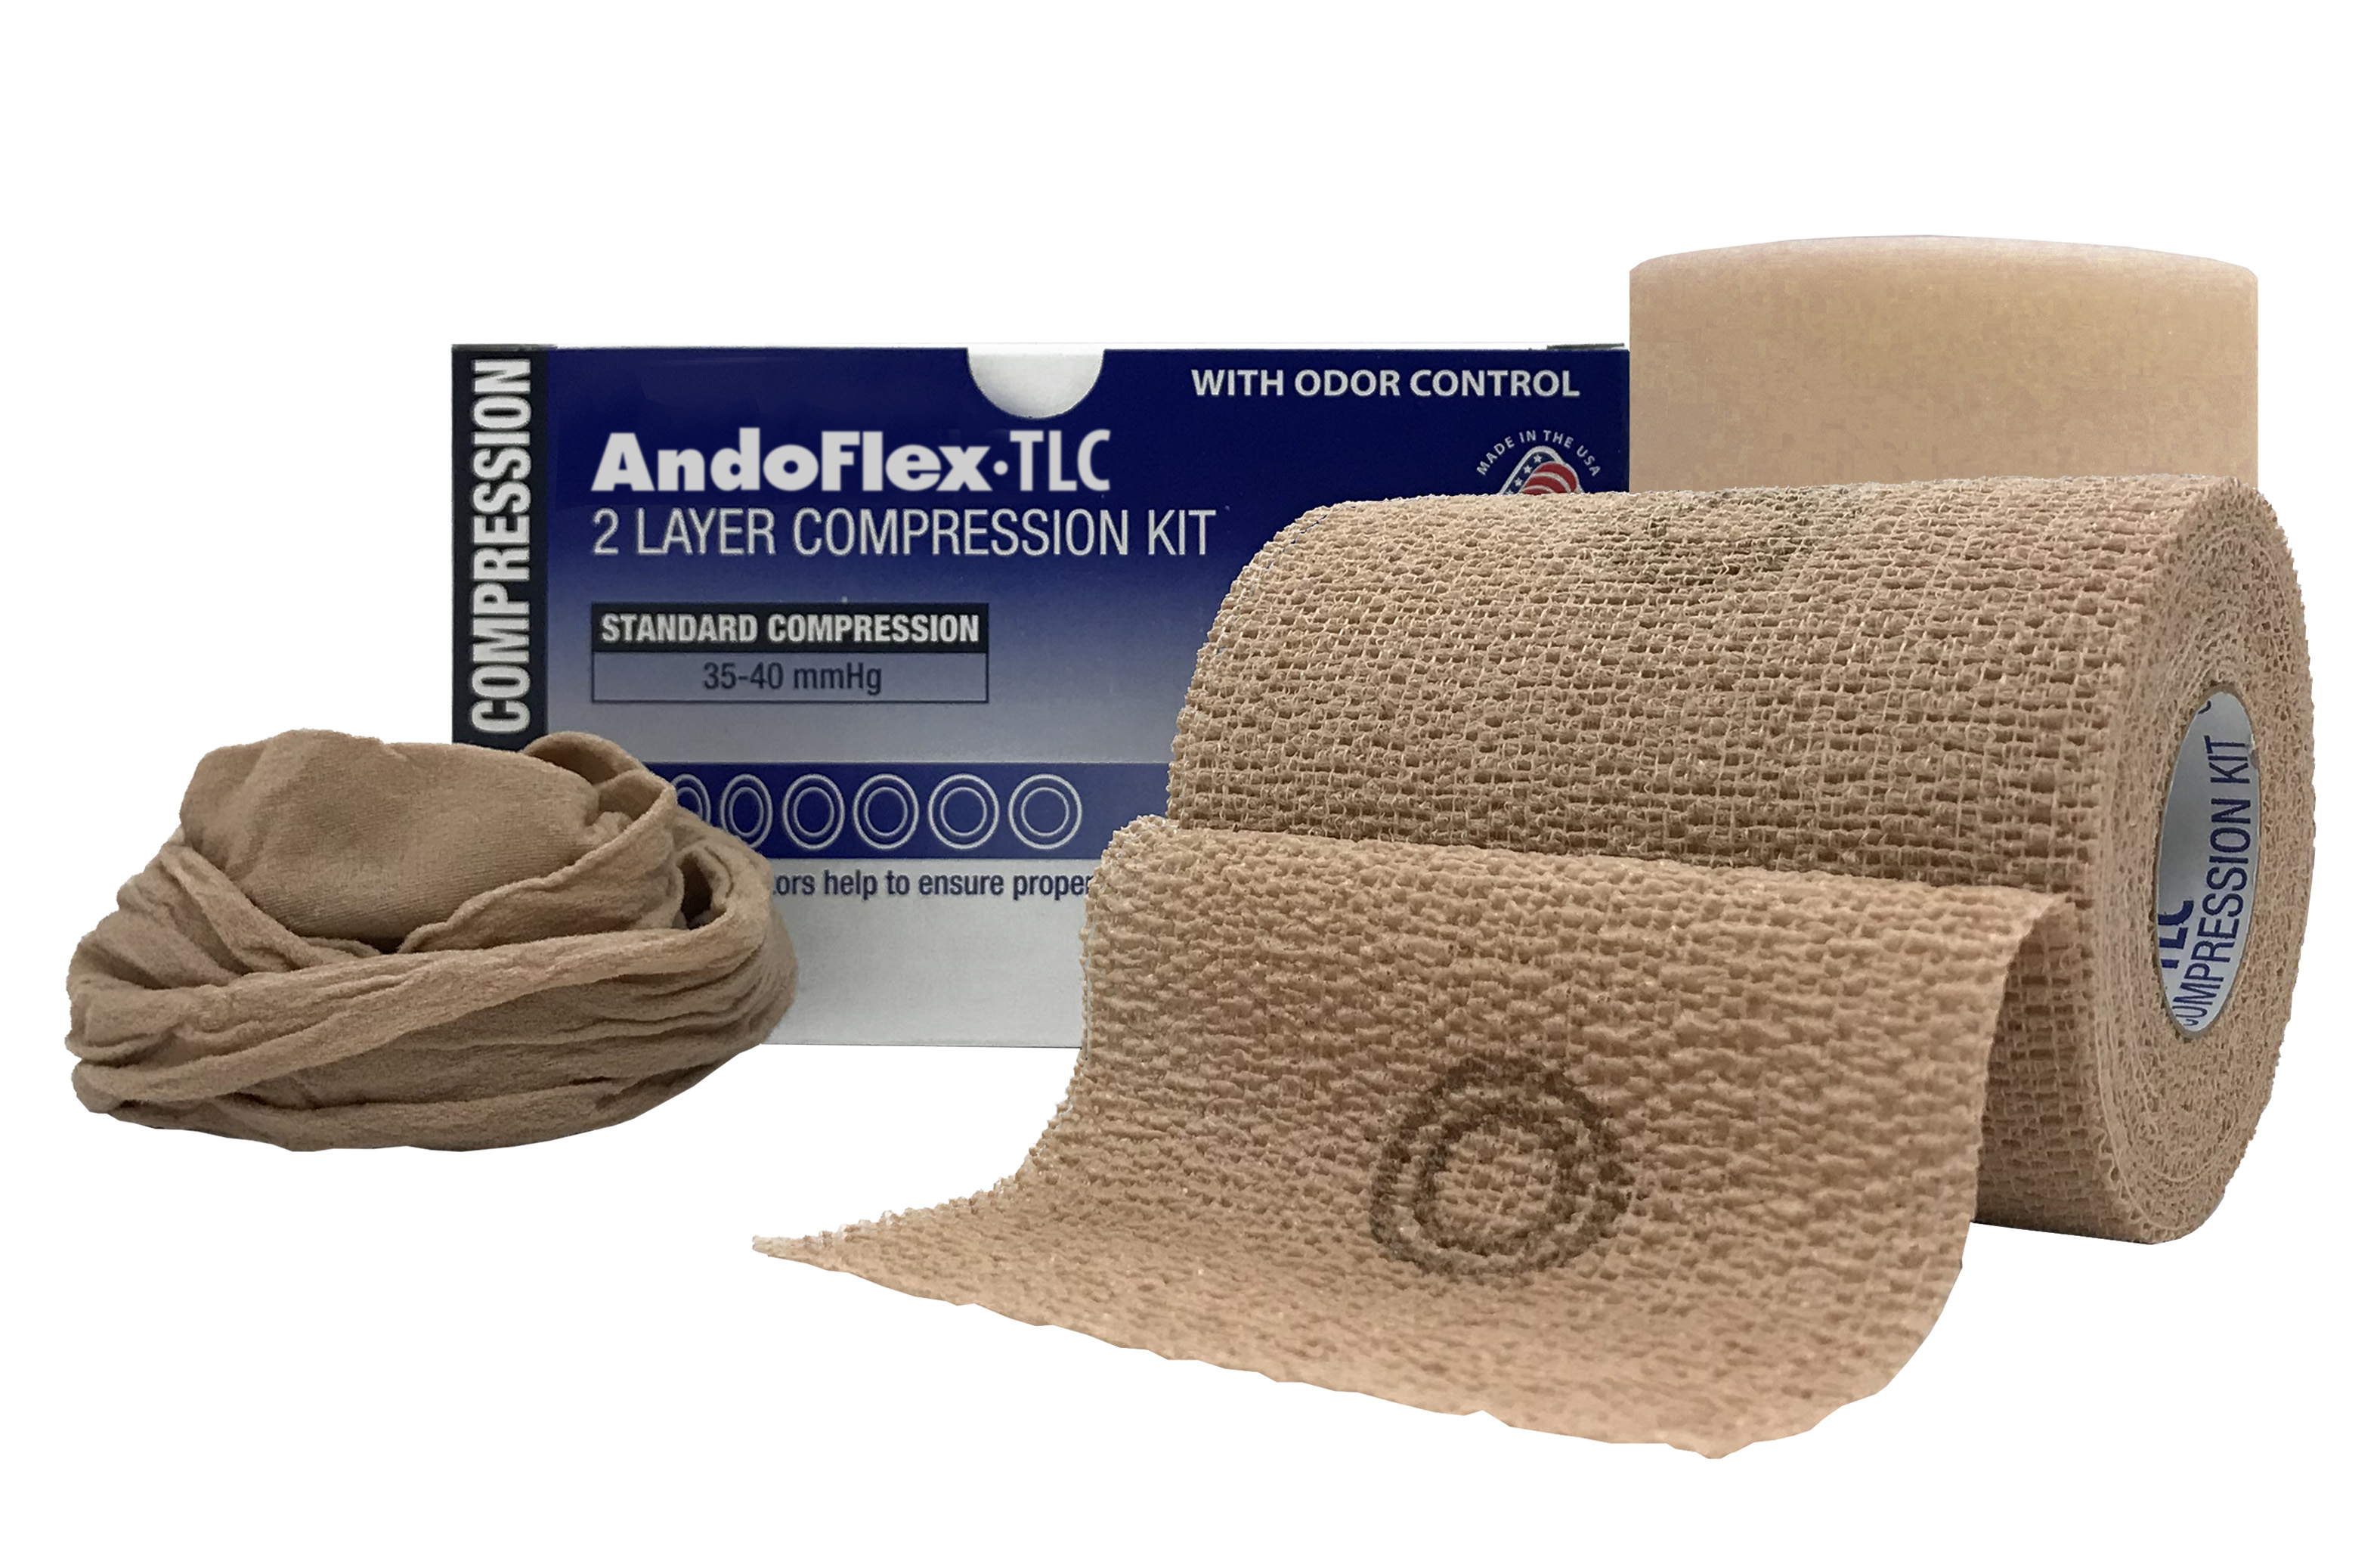 AndoFlex TLC — 2 layer kit with malodour control